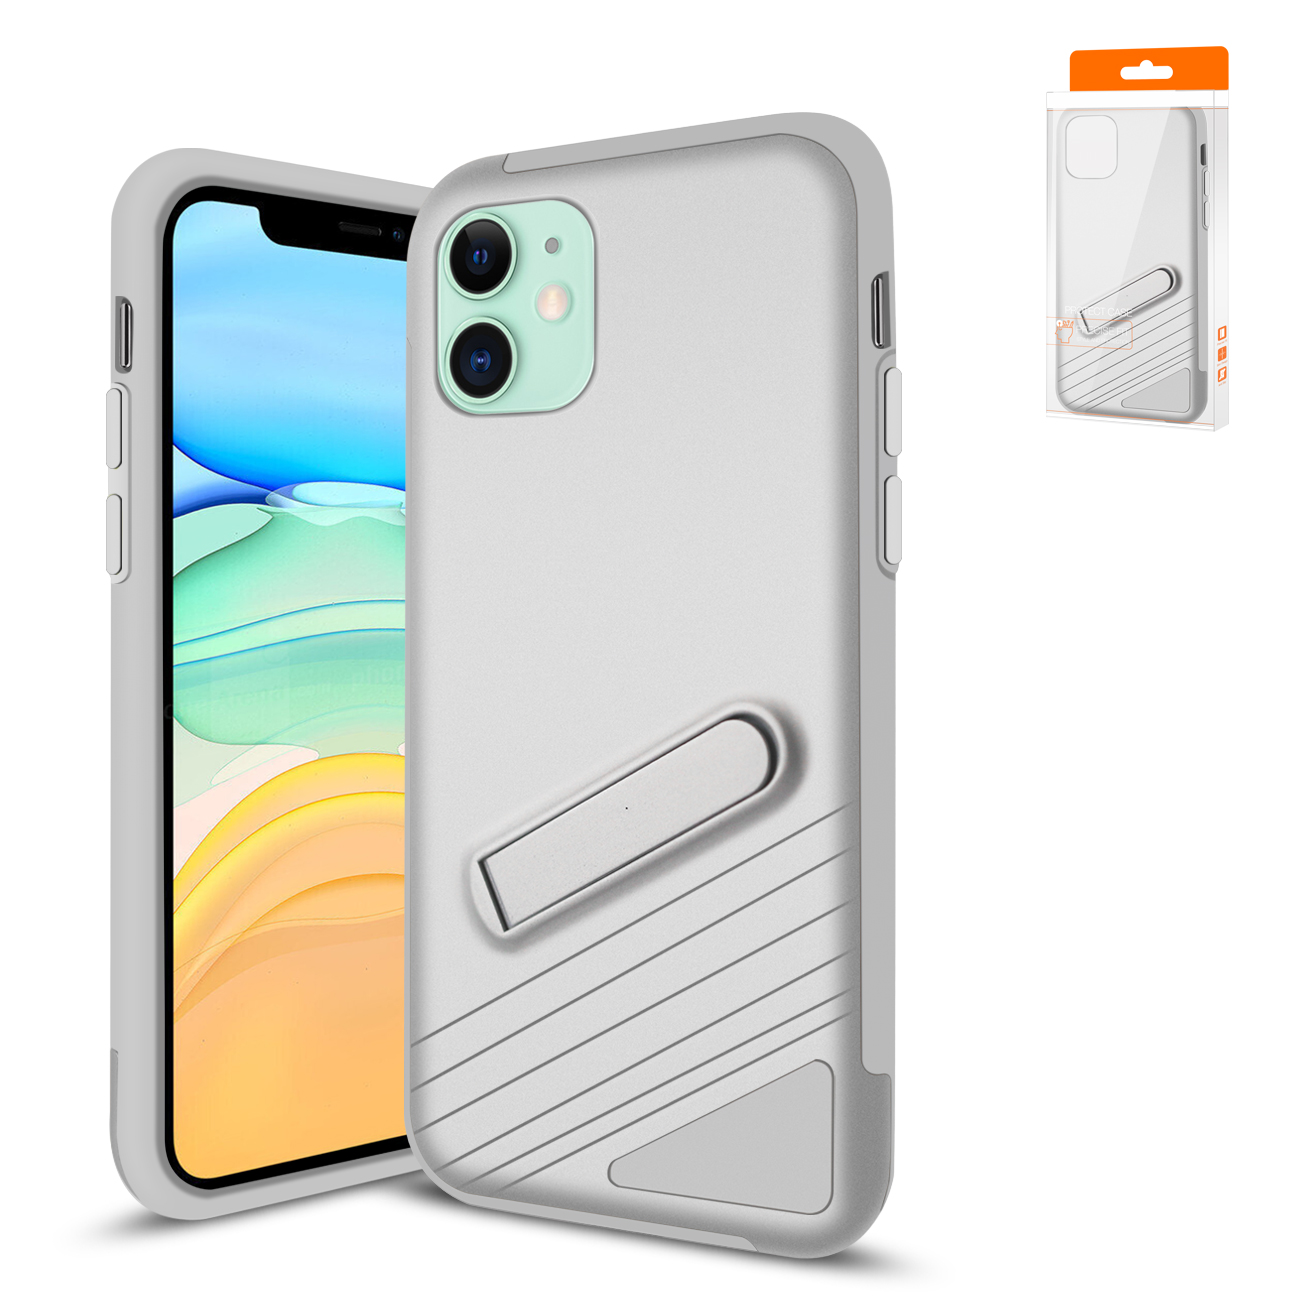 Reiko Apple iPhone 11 Armor Cases In Silver